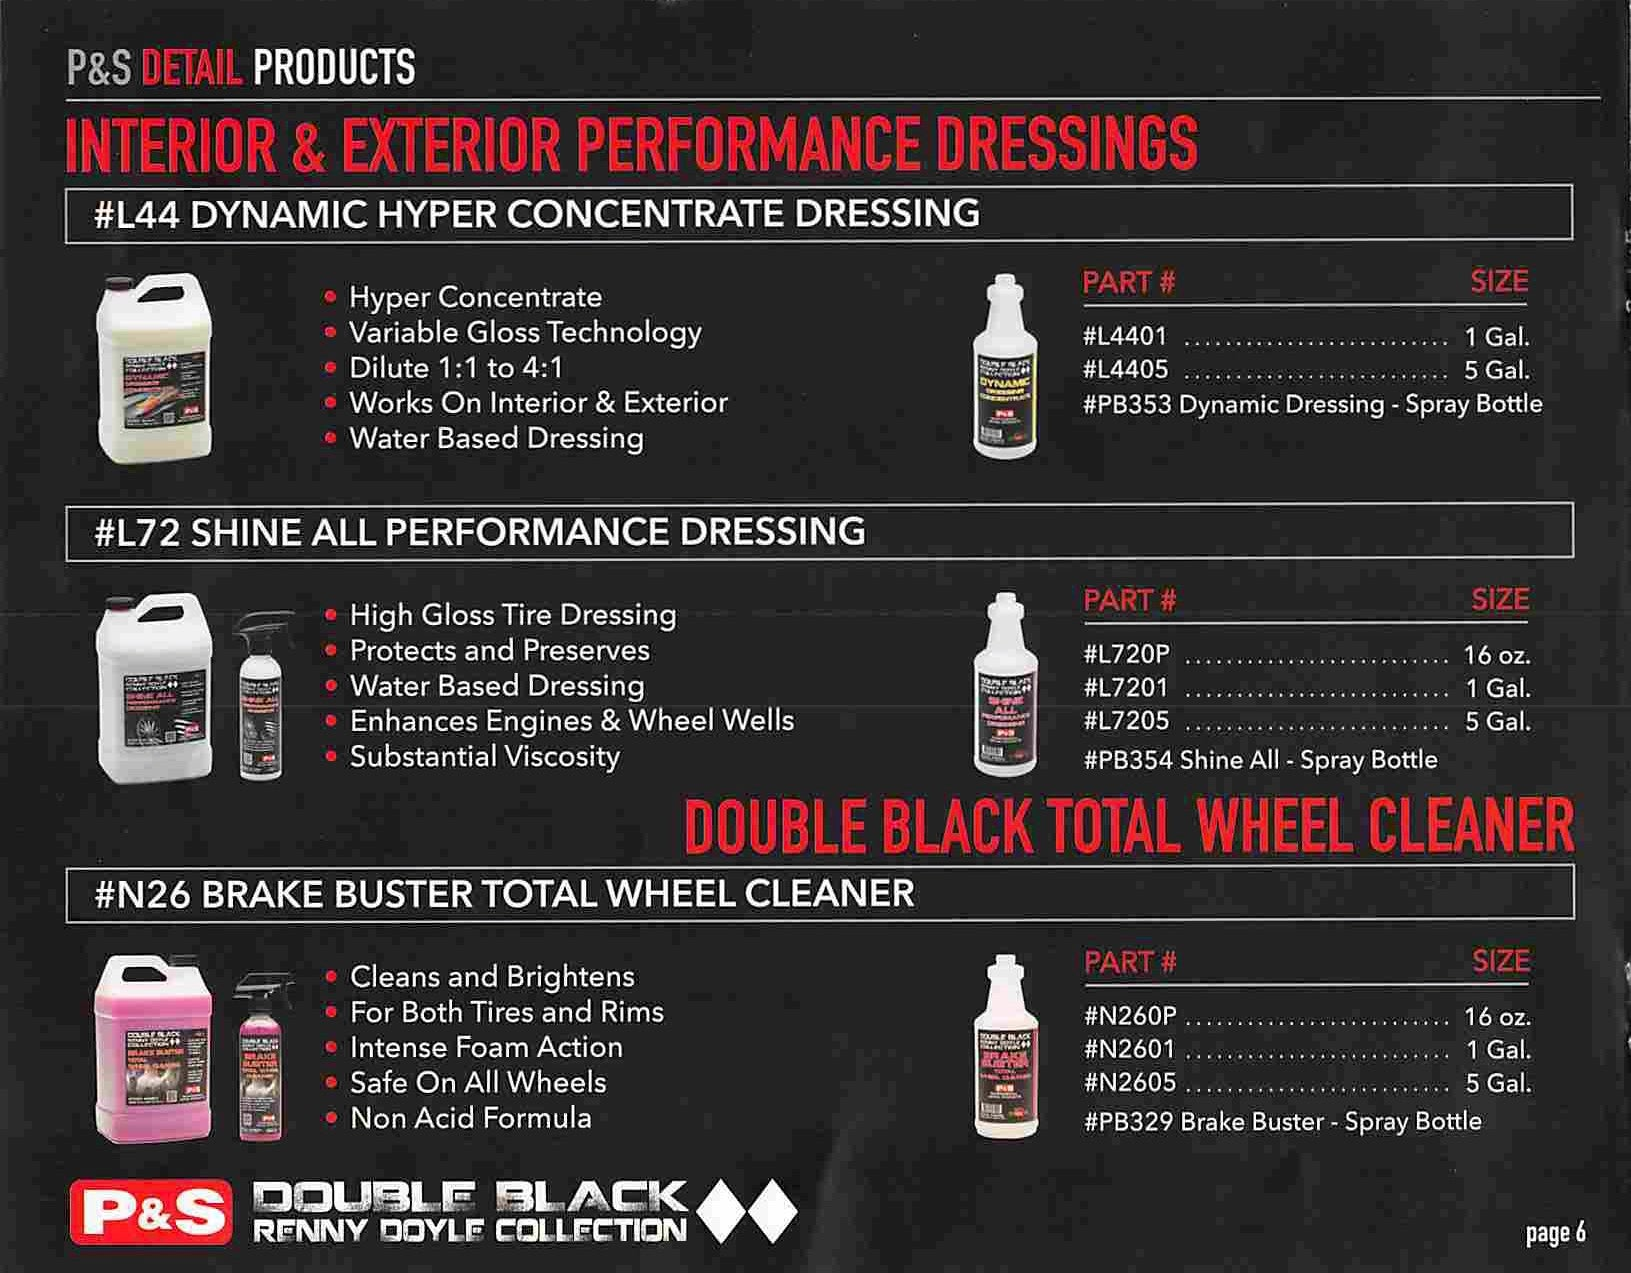 Page 8 of the Double Black Renny Doyle Collection Catalogue